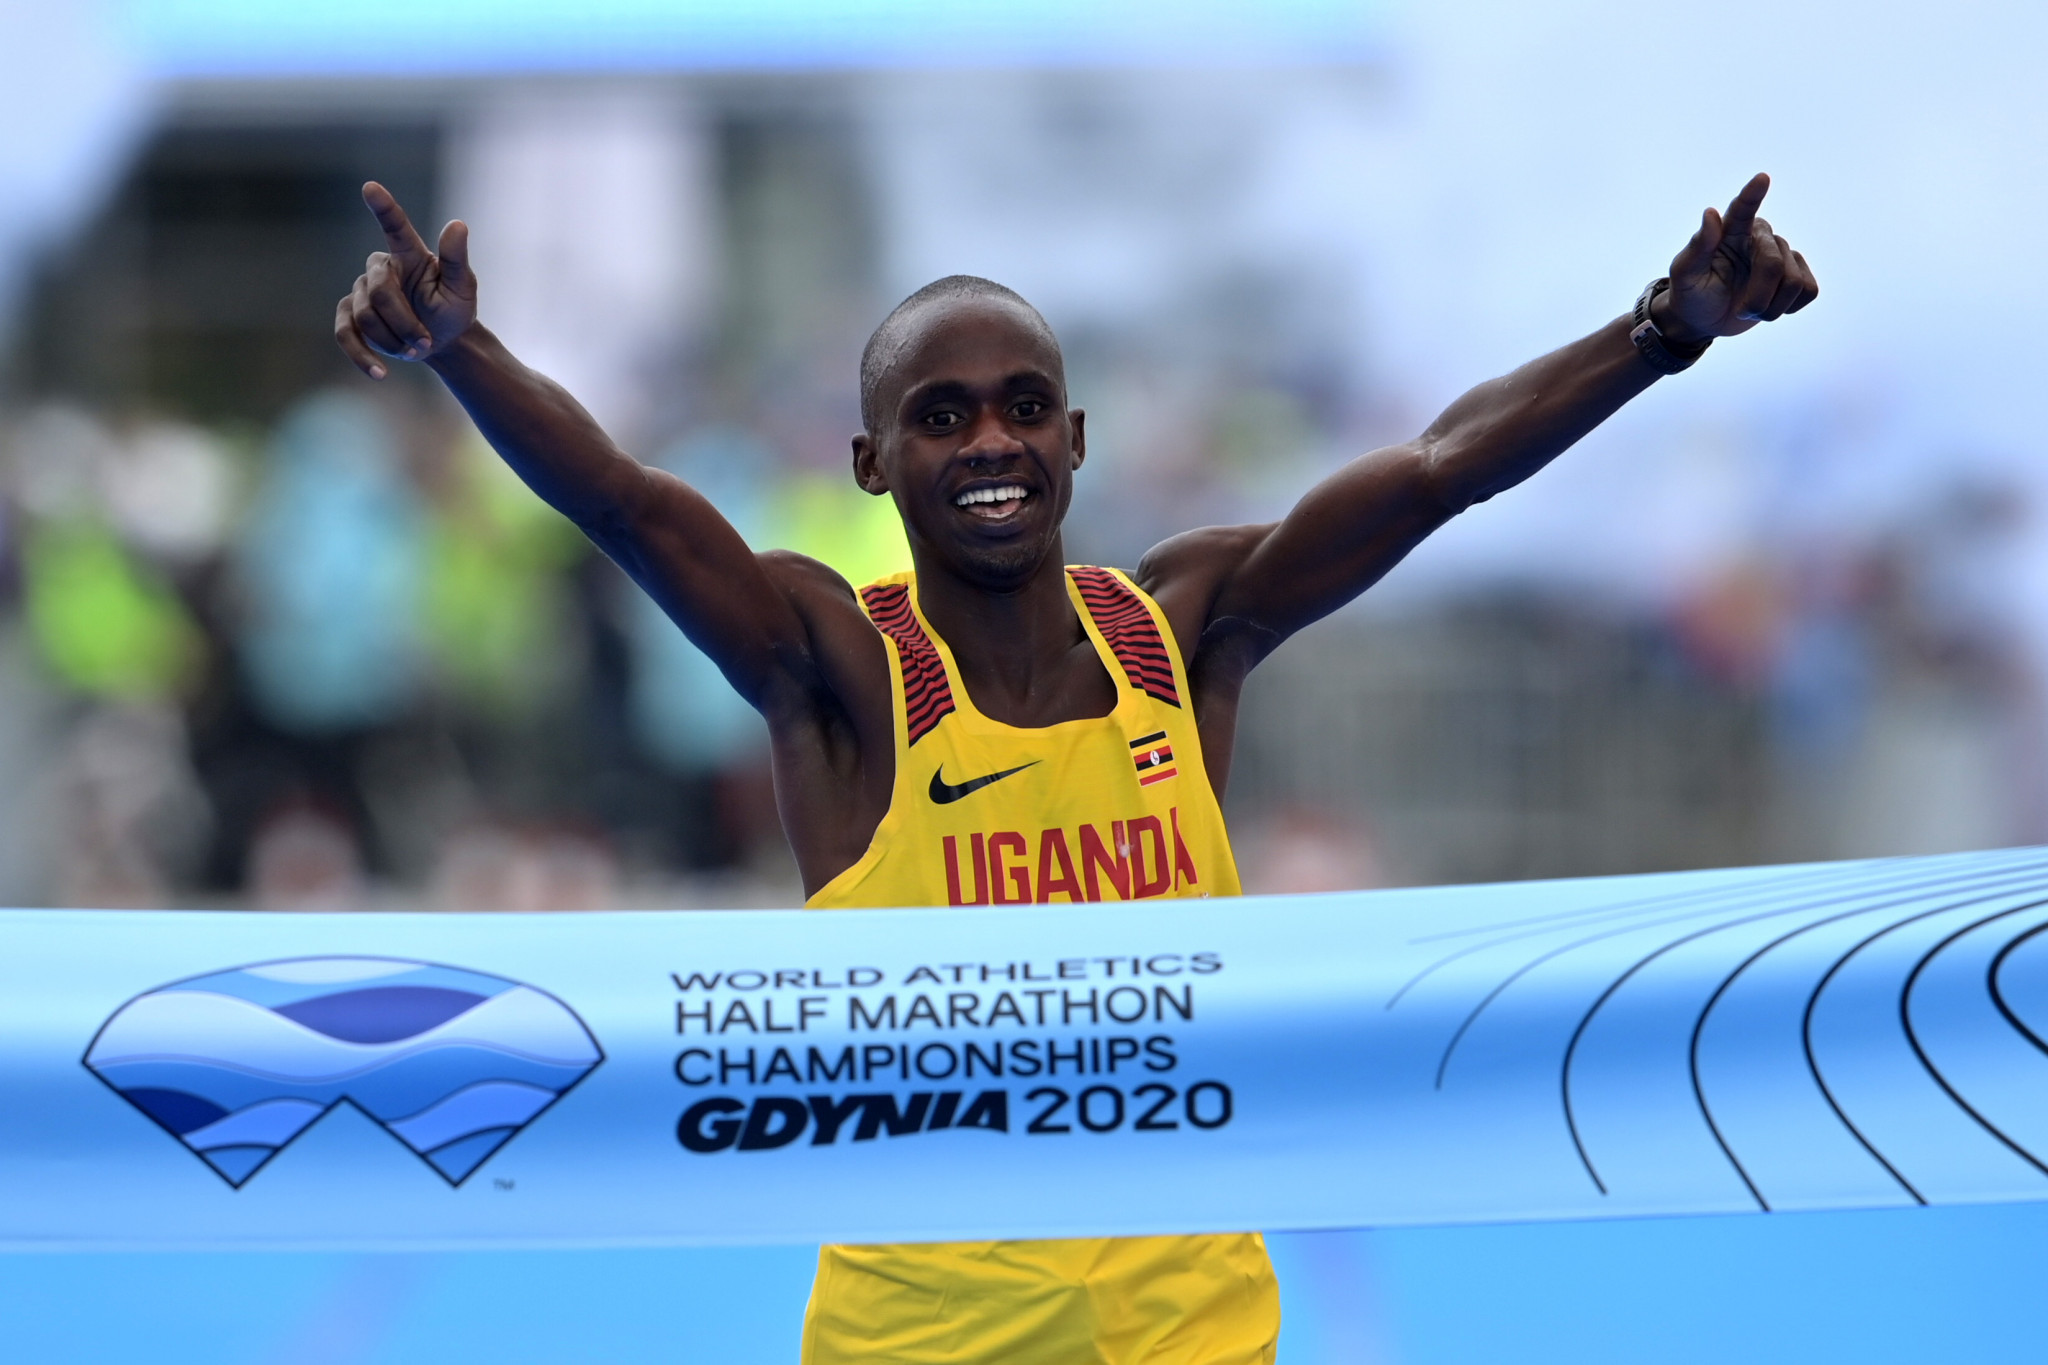 Nineteen-year-old Jacob Kiplimo won the men's title at the World Athletics Half Marathon Championships in Gdynia today ©Getty Images